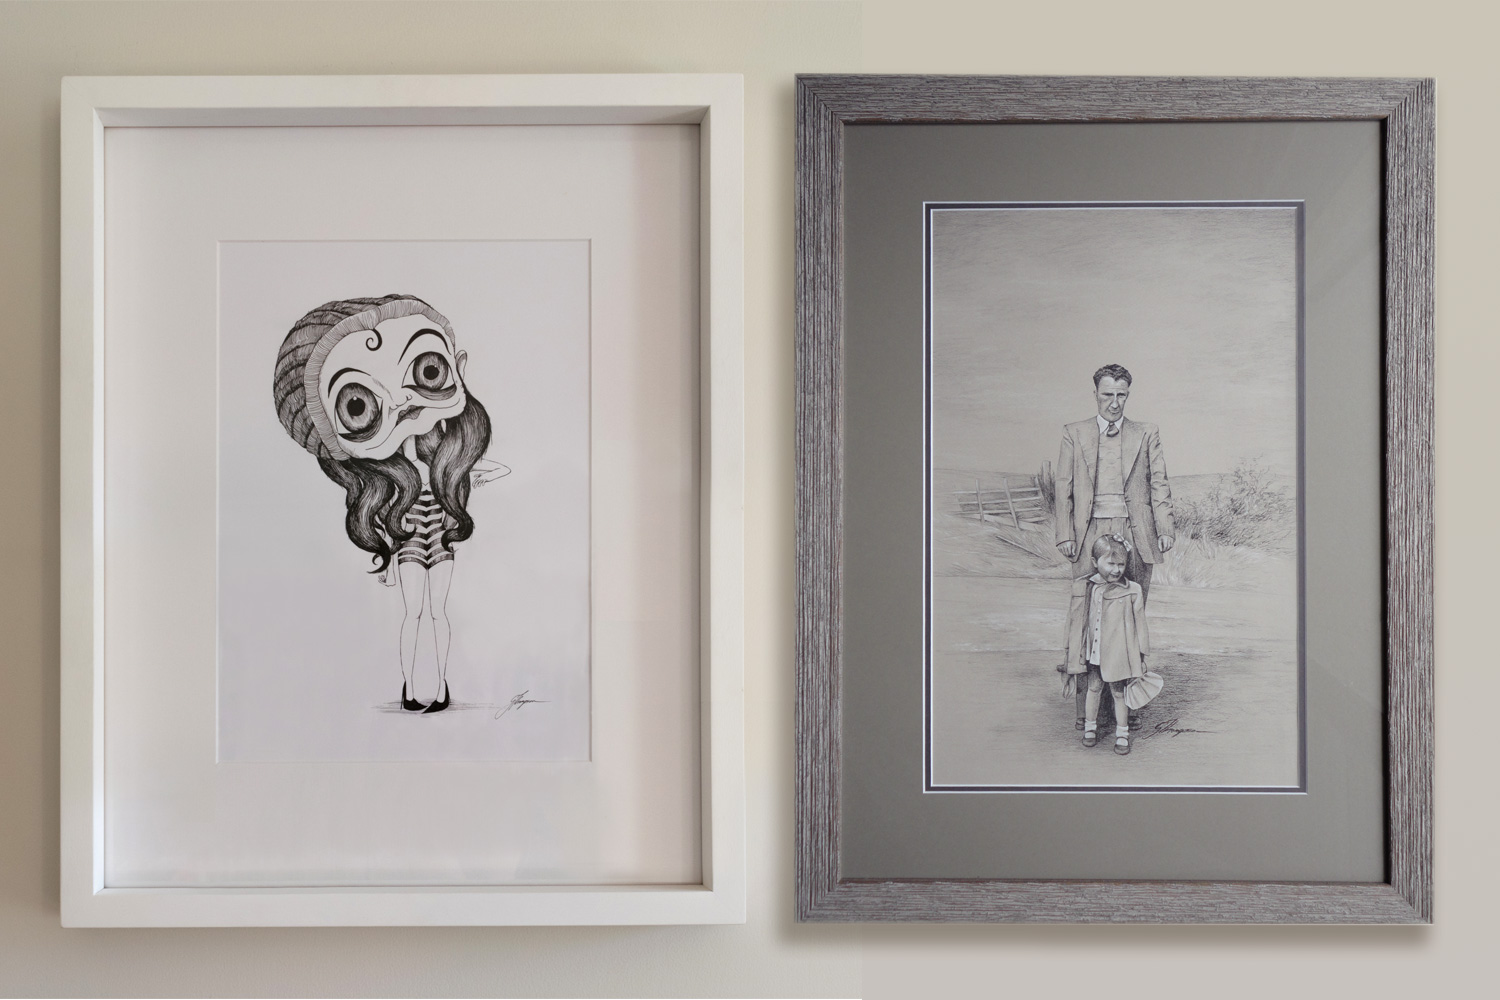 Left 'Lost Youth' 2012, Ink on paper, 230mm x 330mm (9in x 12.9in). Right 'Father and Daughter' 2013, White and black charcoal on brown paper, 260mm x 400mm (10.2in x 15.7in).